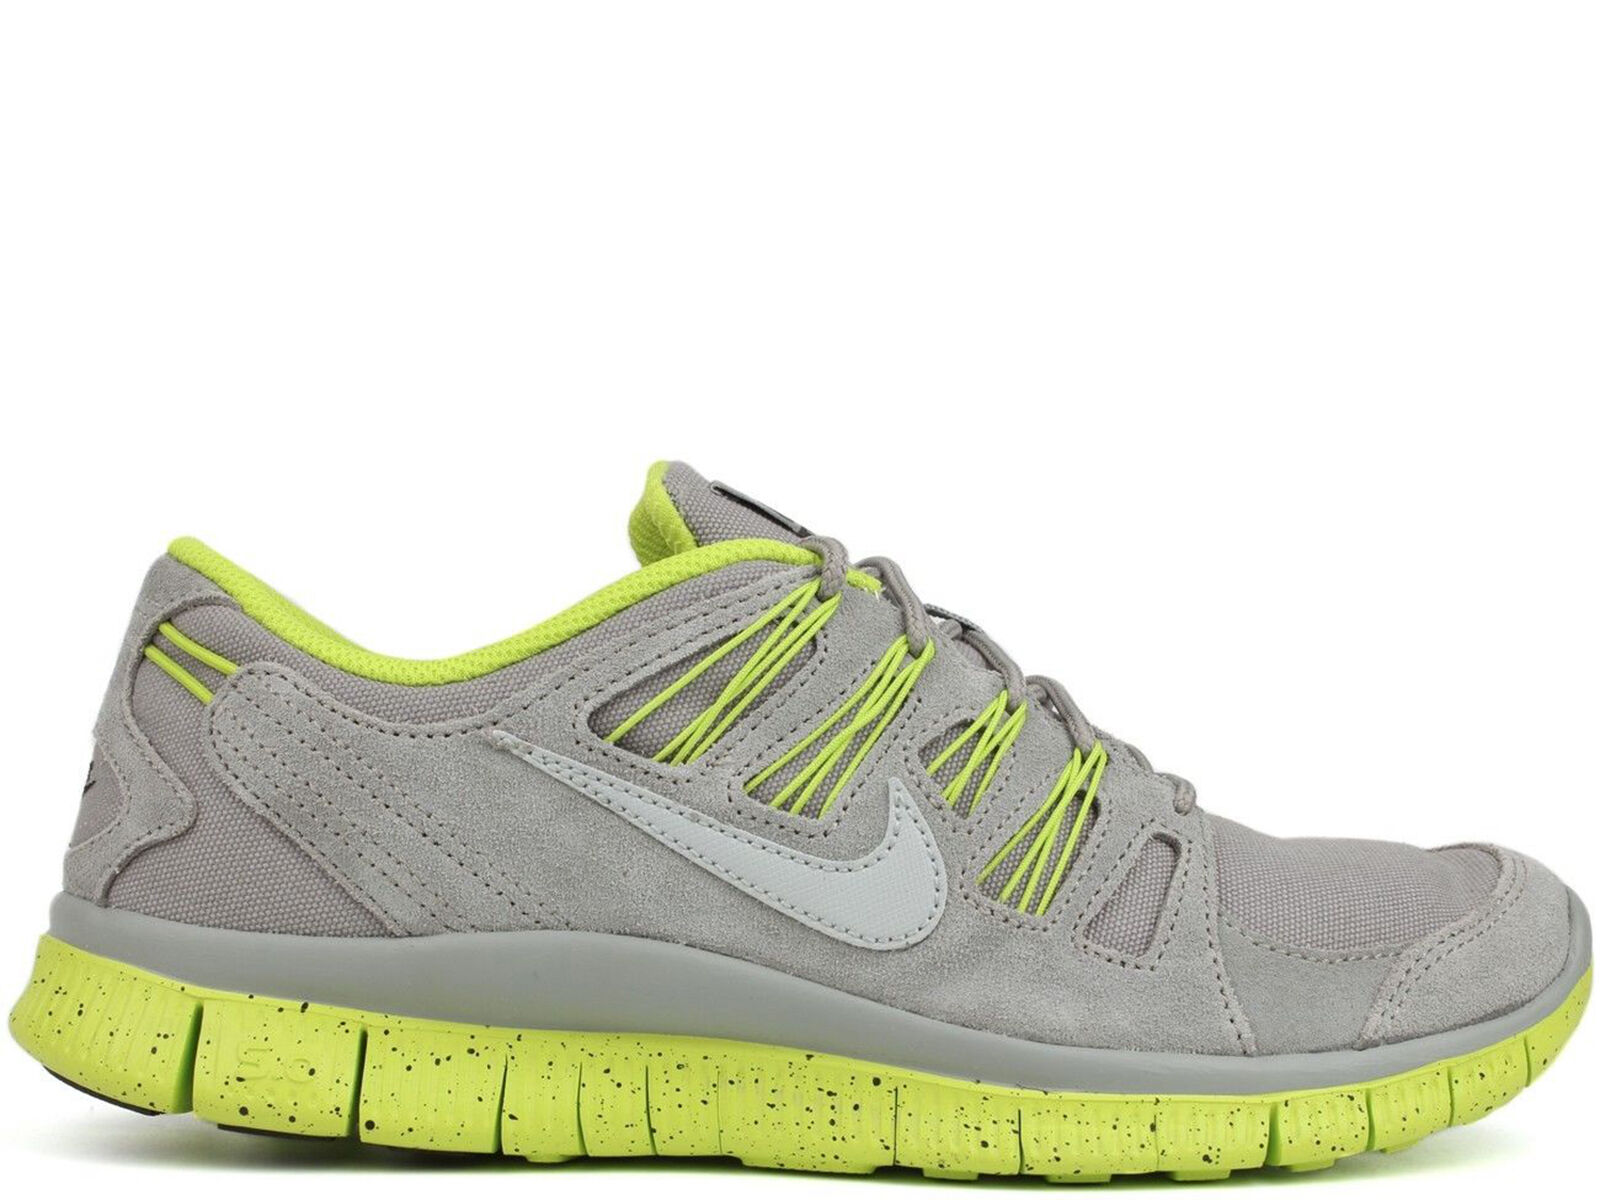 11743ee3f91d Brand New New New Nike Free 5.0 EXT Men s Athletic Fashion Sneakers  580530  003  4c104c